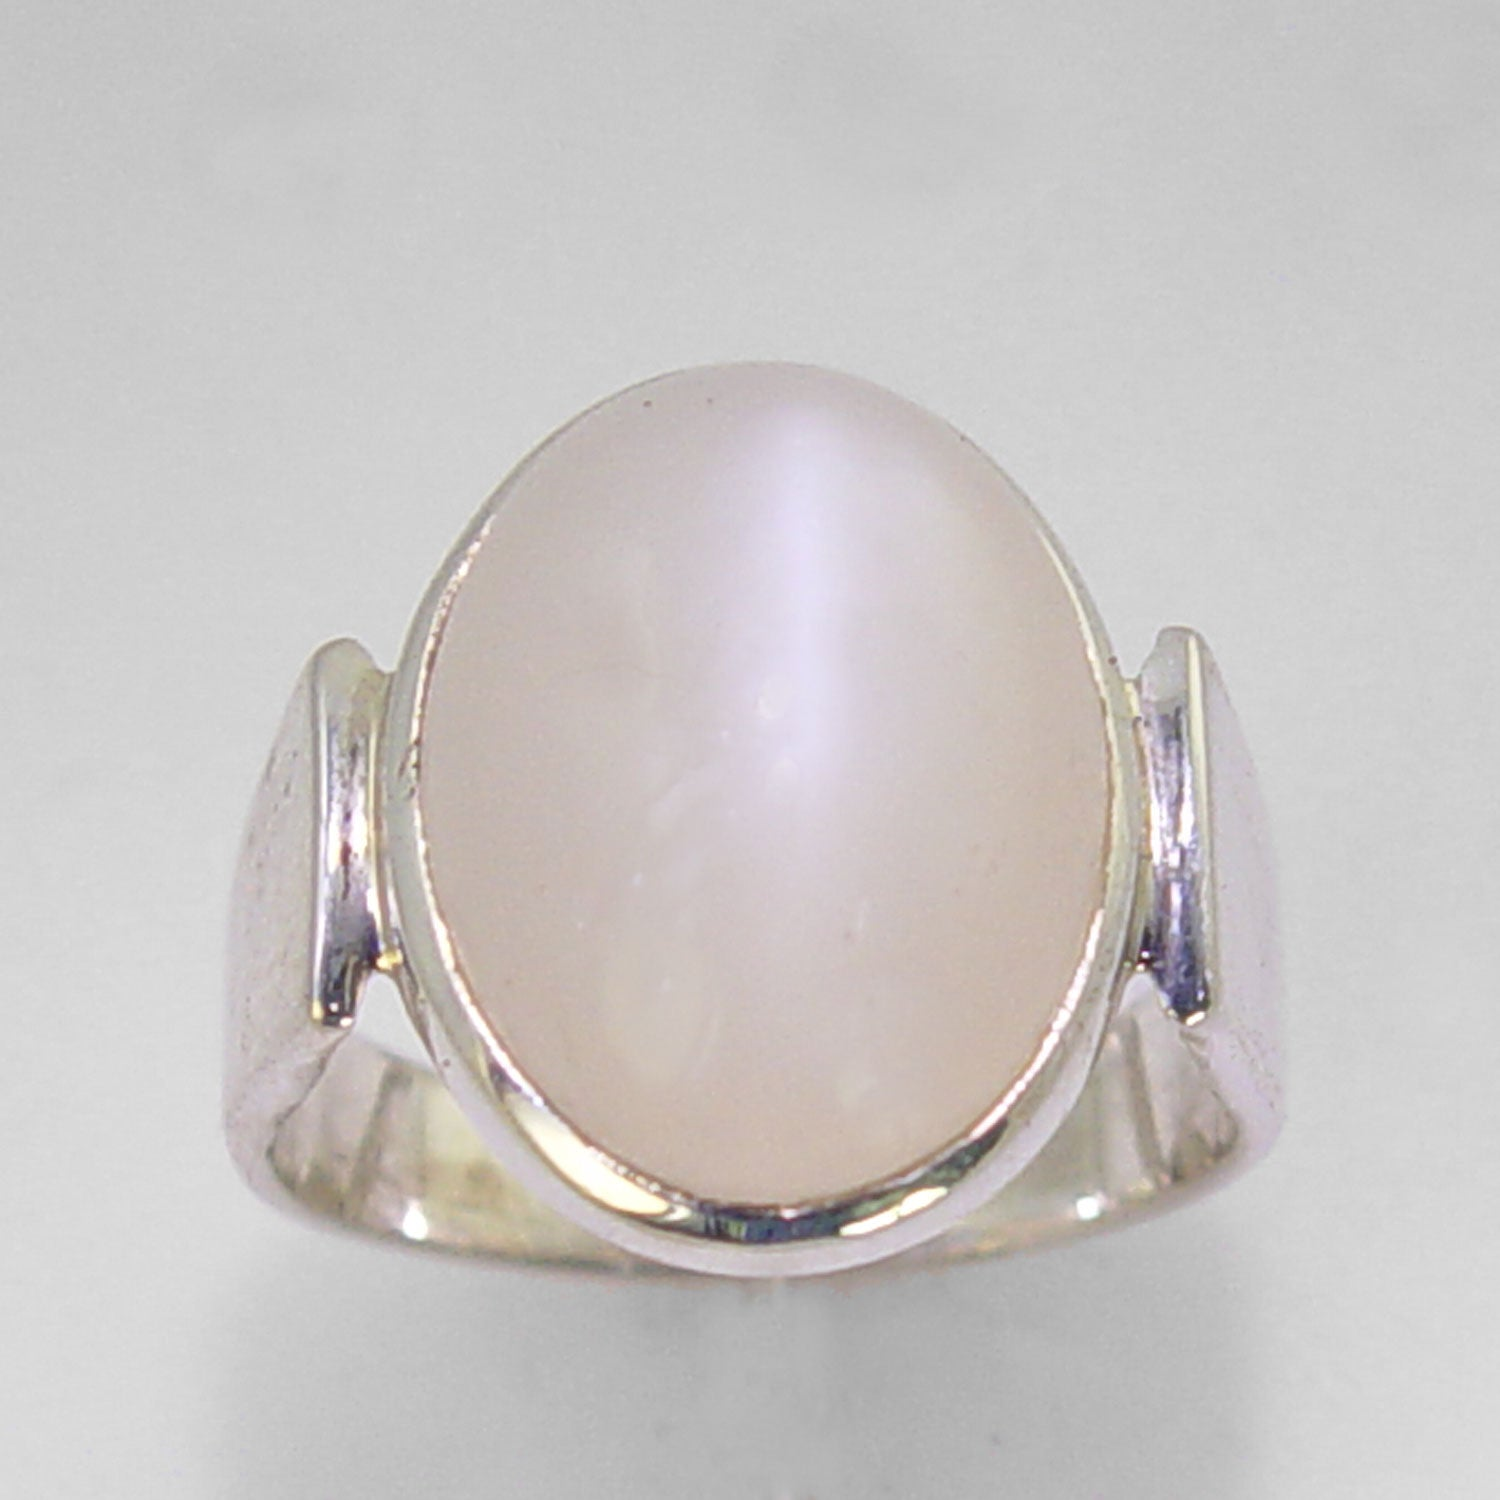 Moonstone Cat's Eye 9.3 ct Oval Cab Sterling Silver Ring, Size 8